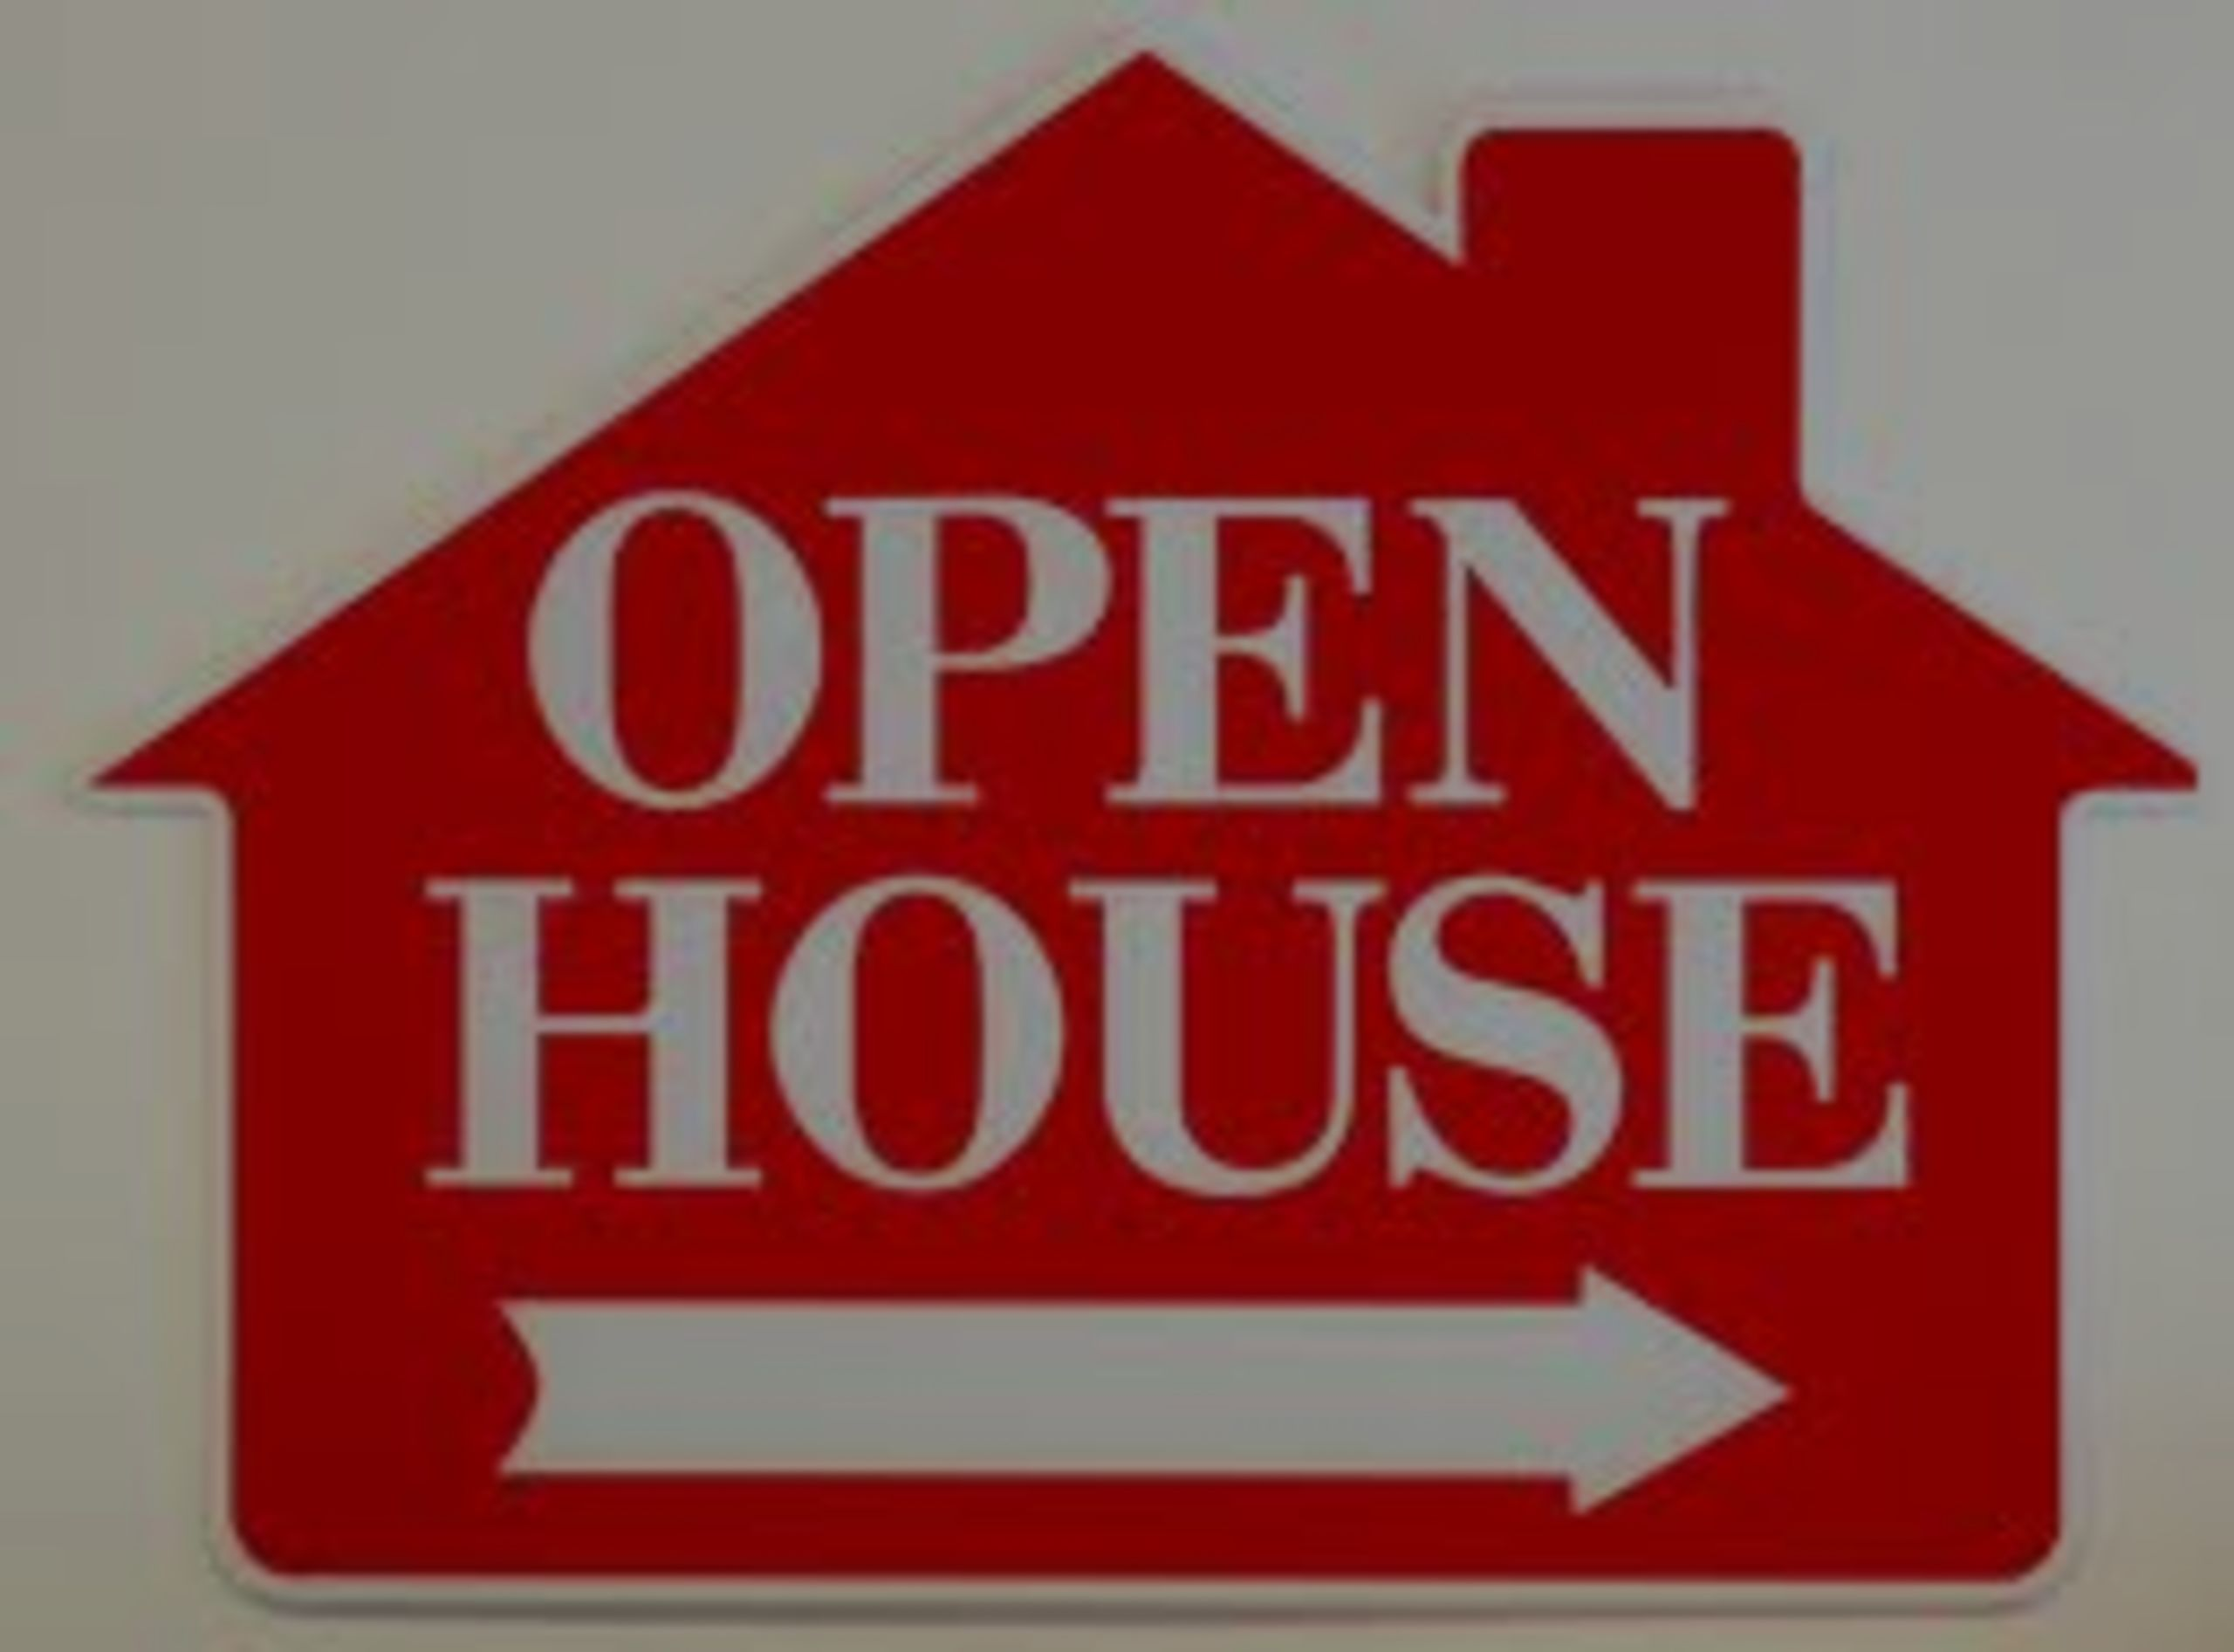 Are open houses still relevant?